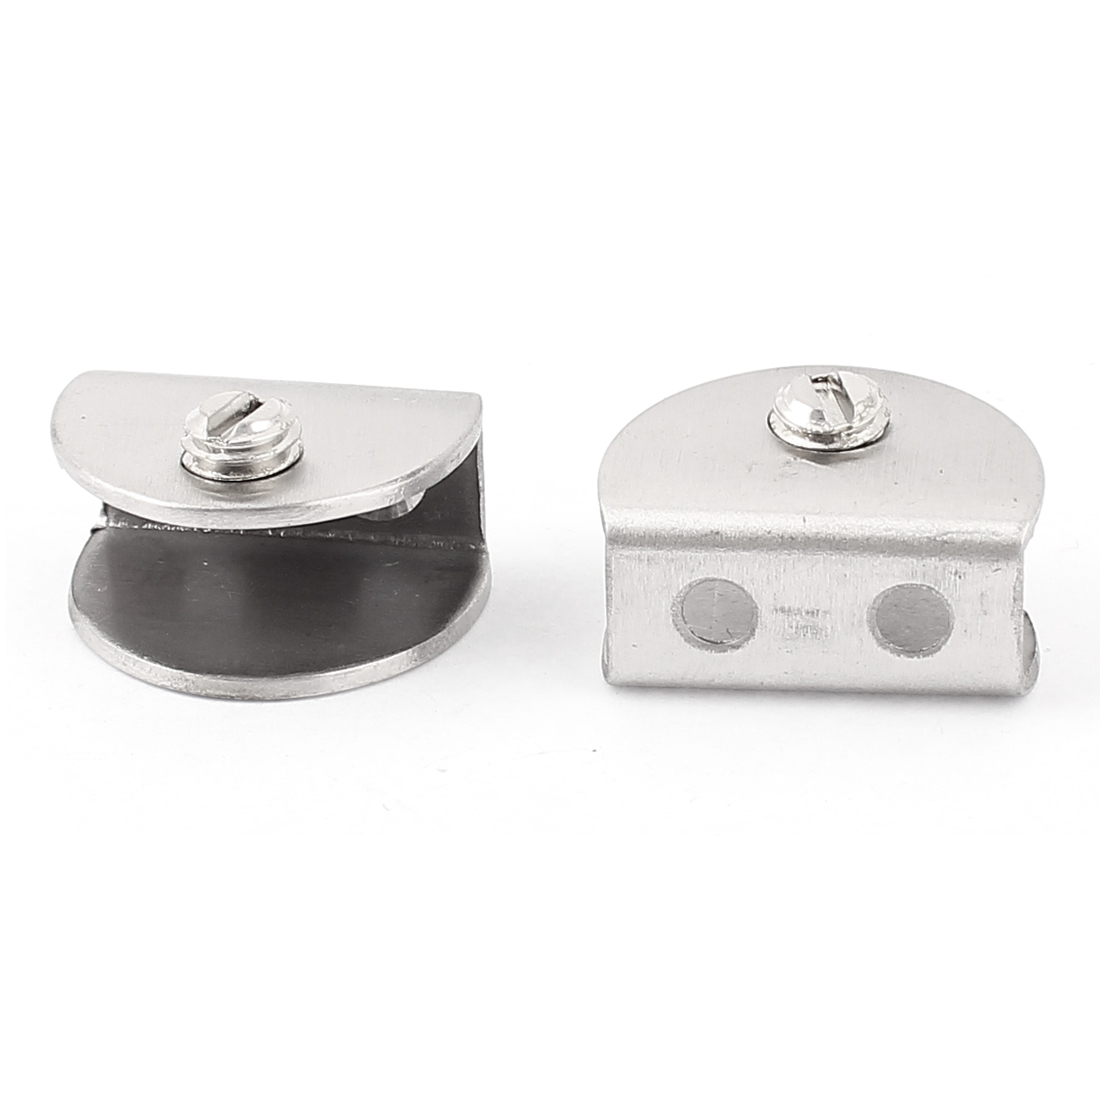 2Pcs Half Round Shaped Clip Clamp Holder Silver Tone for 10mm Thick Glass